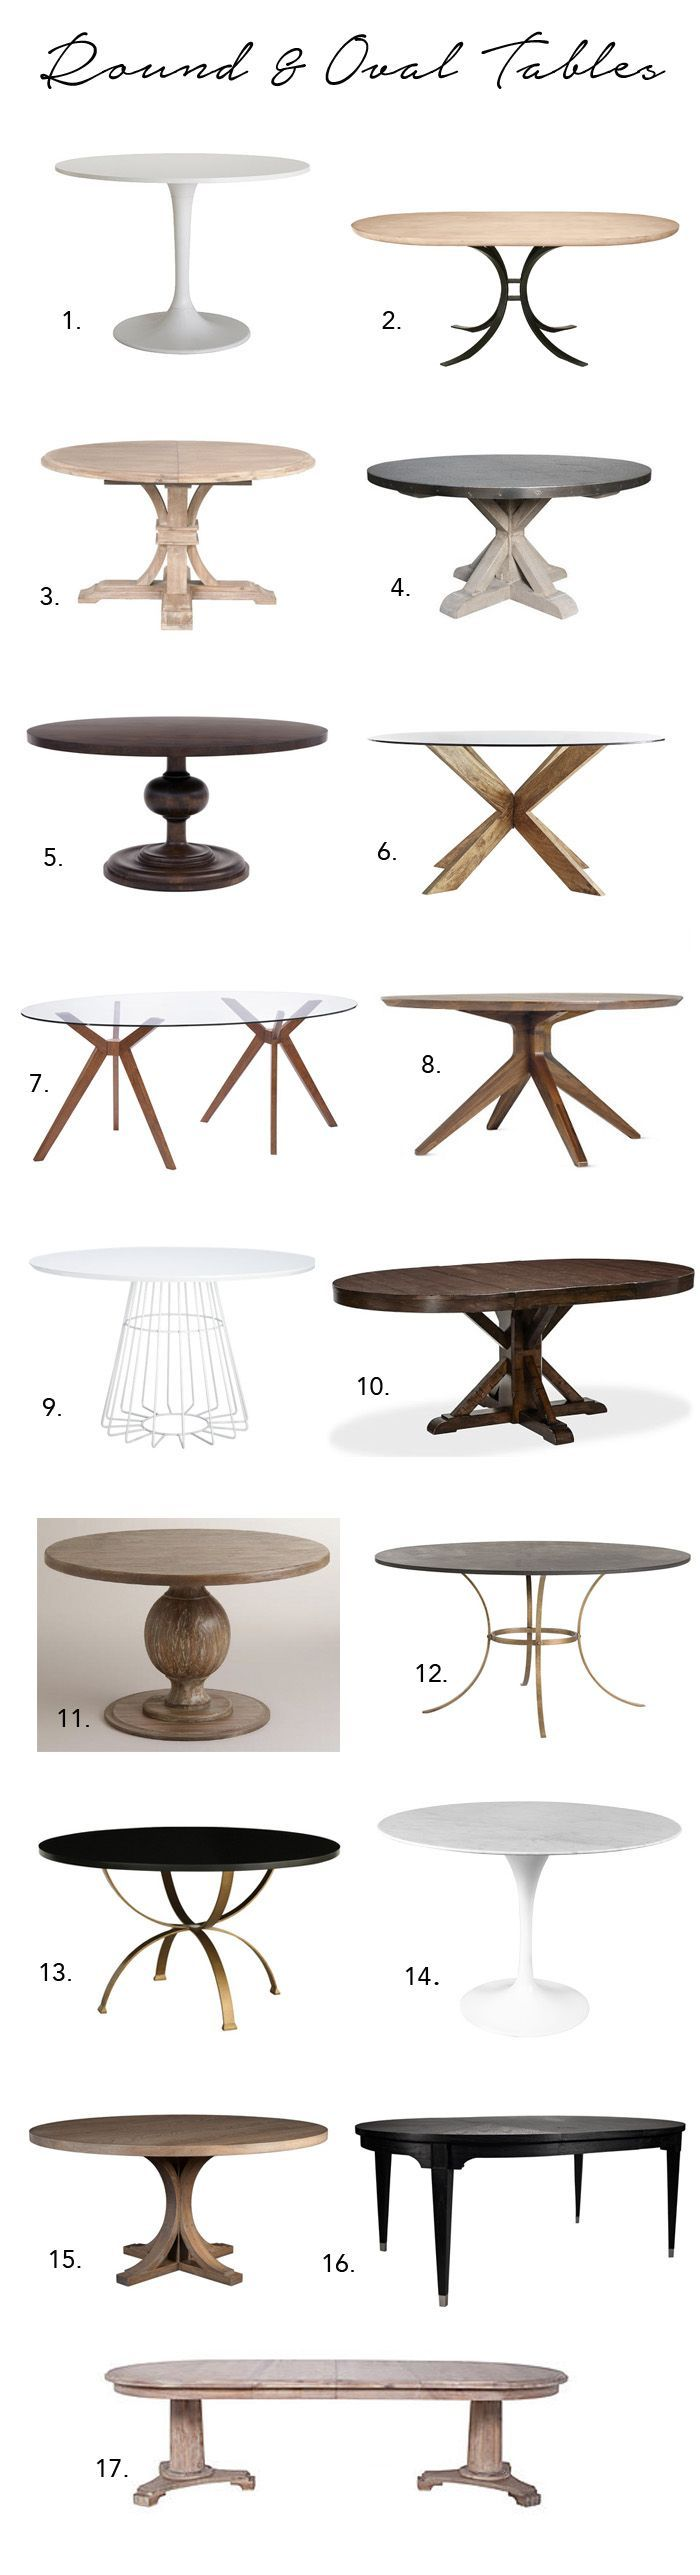 Chic 12 Seater Dining Table Dimensions square dining table to seat 8 berlin square Best 25 Dining Table Design Ideas On Pinterest Mesas Dining Tables And Dining Table